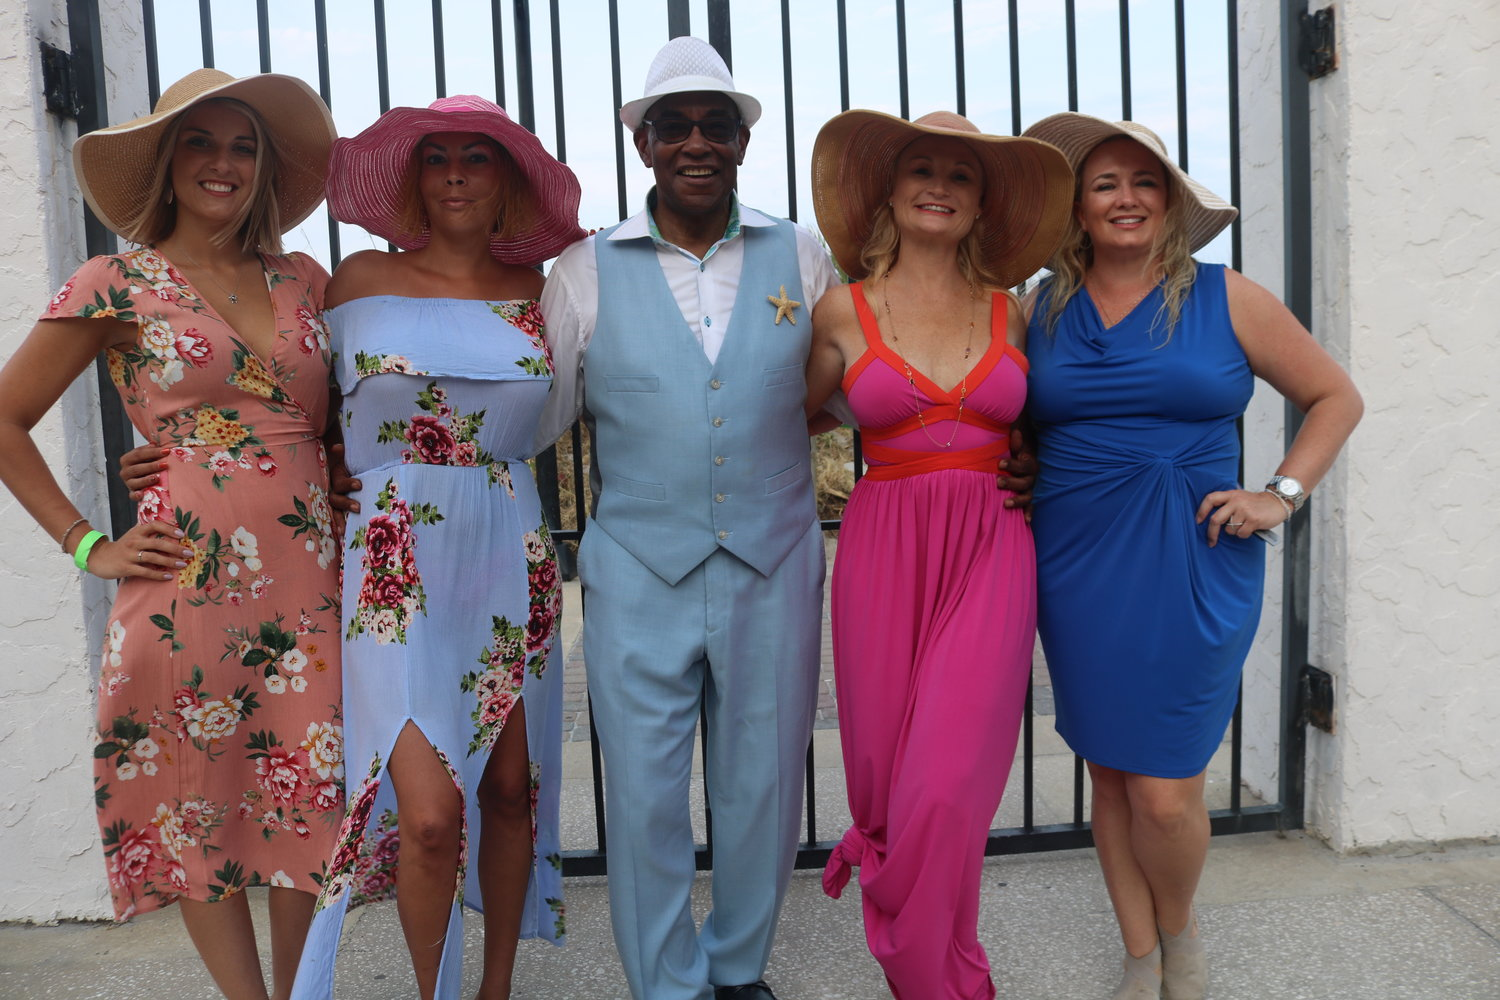 (left to right) Alyssa Sharpe, Dr. Crystal Makowski, Chelle Thomas and Trudy Toche pose with maître d', Sterling Joyce (middle) in their sundresses and hats at the Summer Pier Dance.